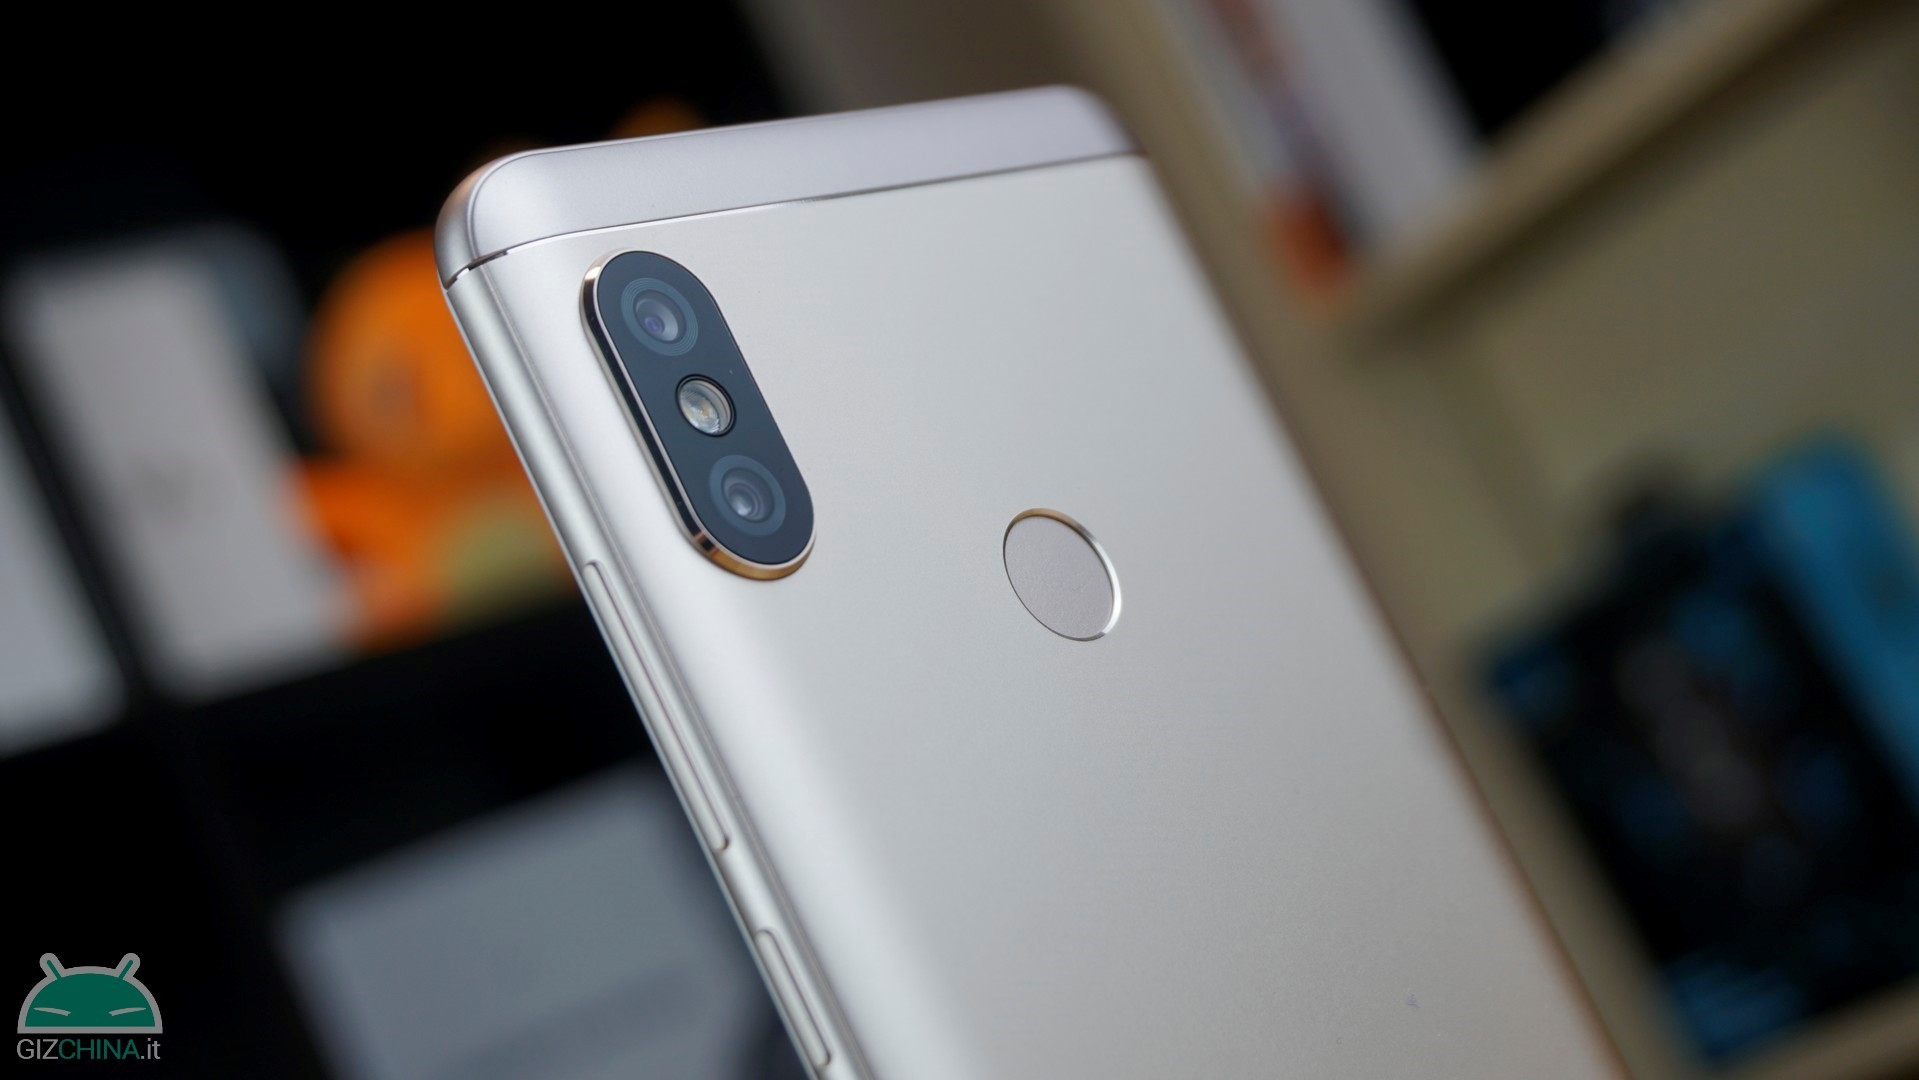 Xiaomi Redmi Note 5 Pro: Full HD video at 60fps with MIUI 10